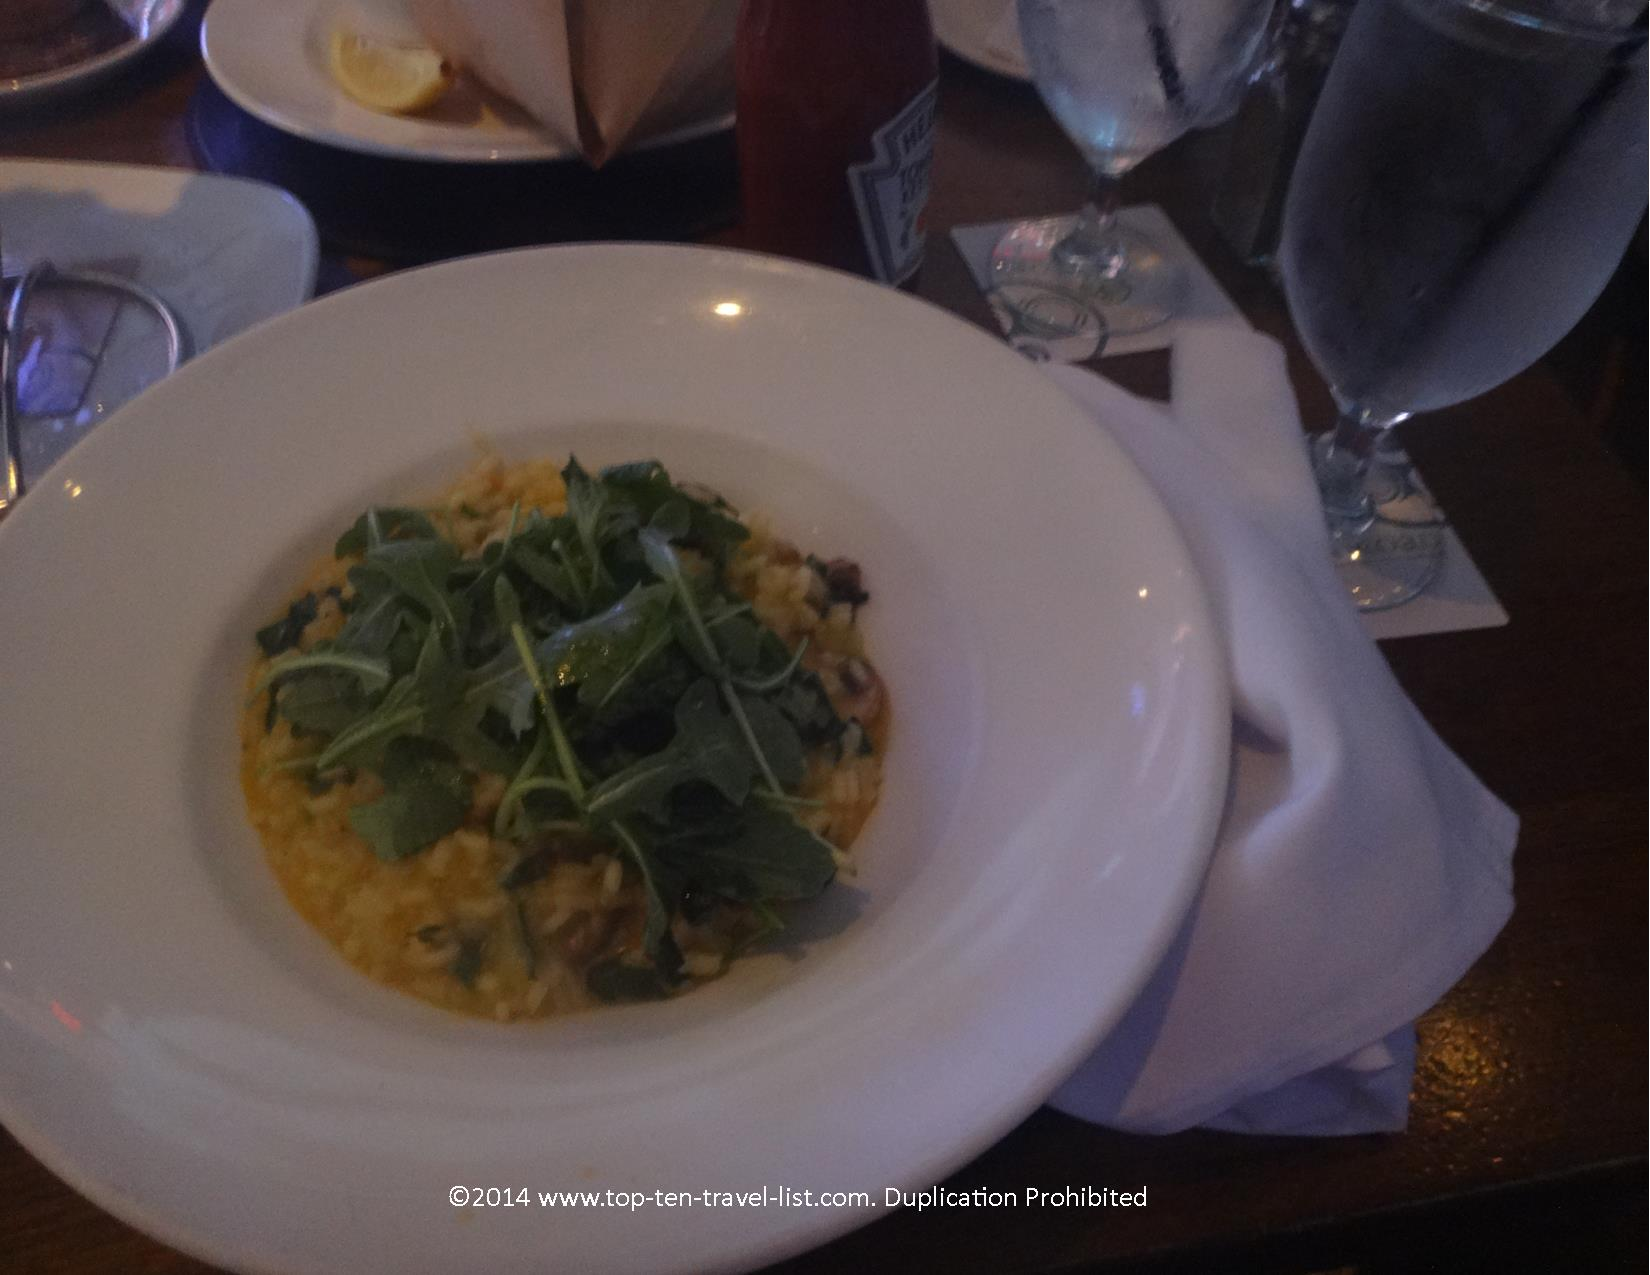 Butternut Squash Risotto at Ragland Road - Downtown Disney in Orlando, Florida